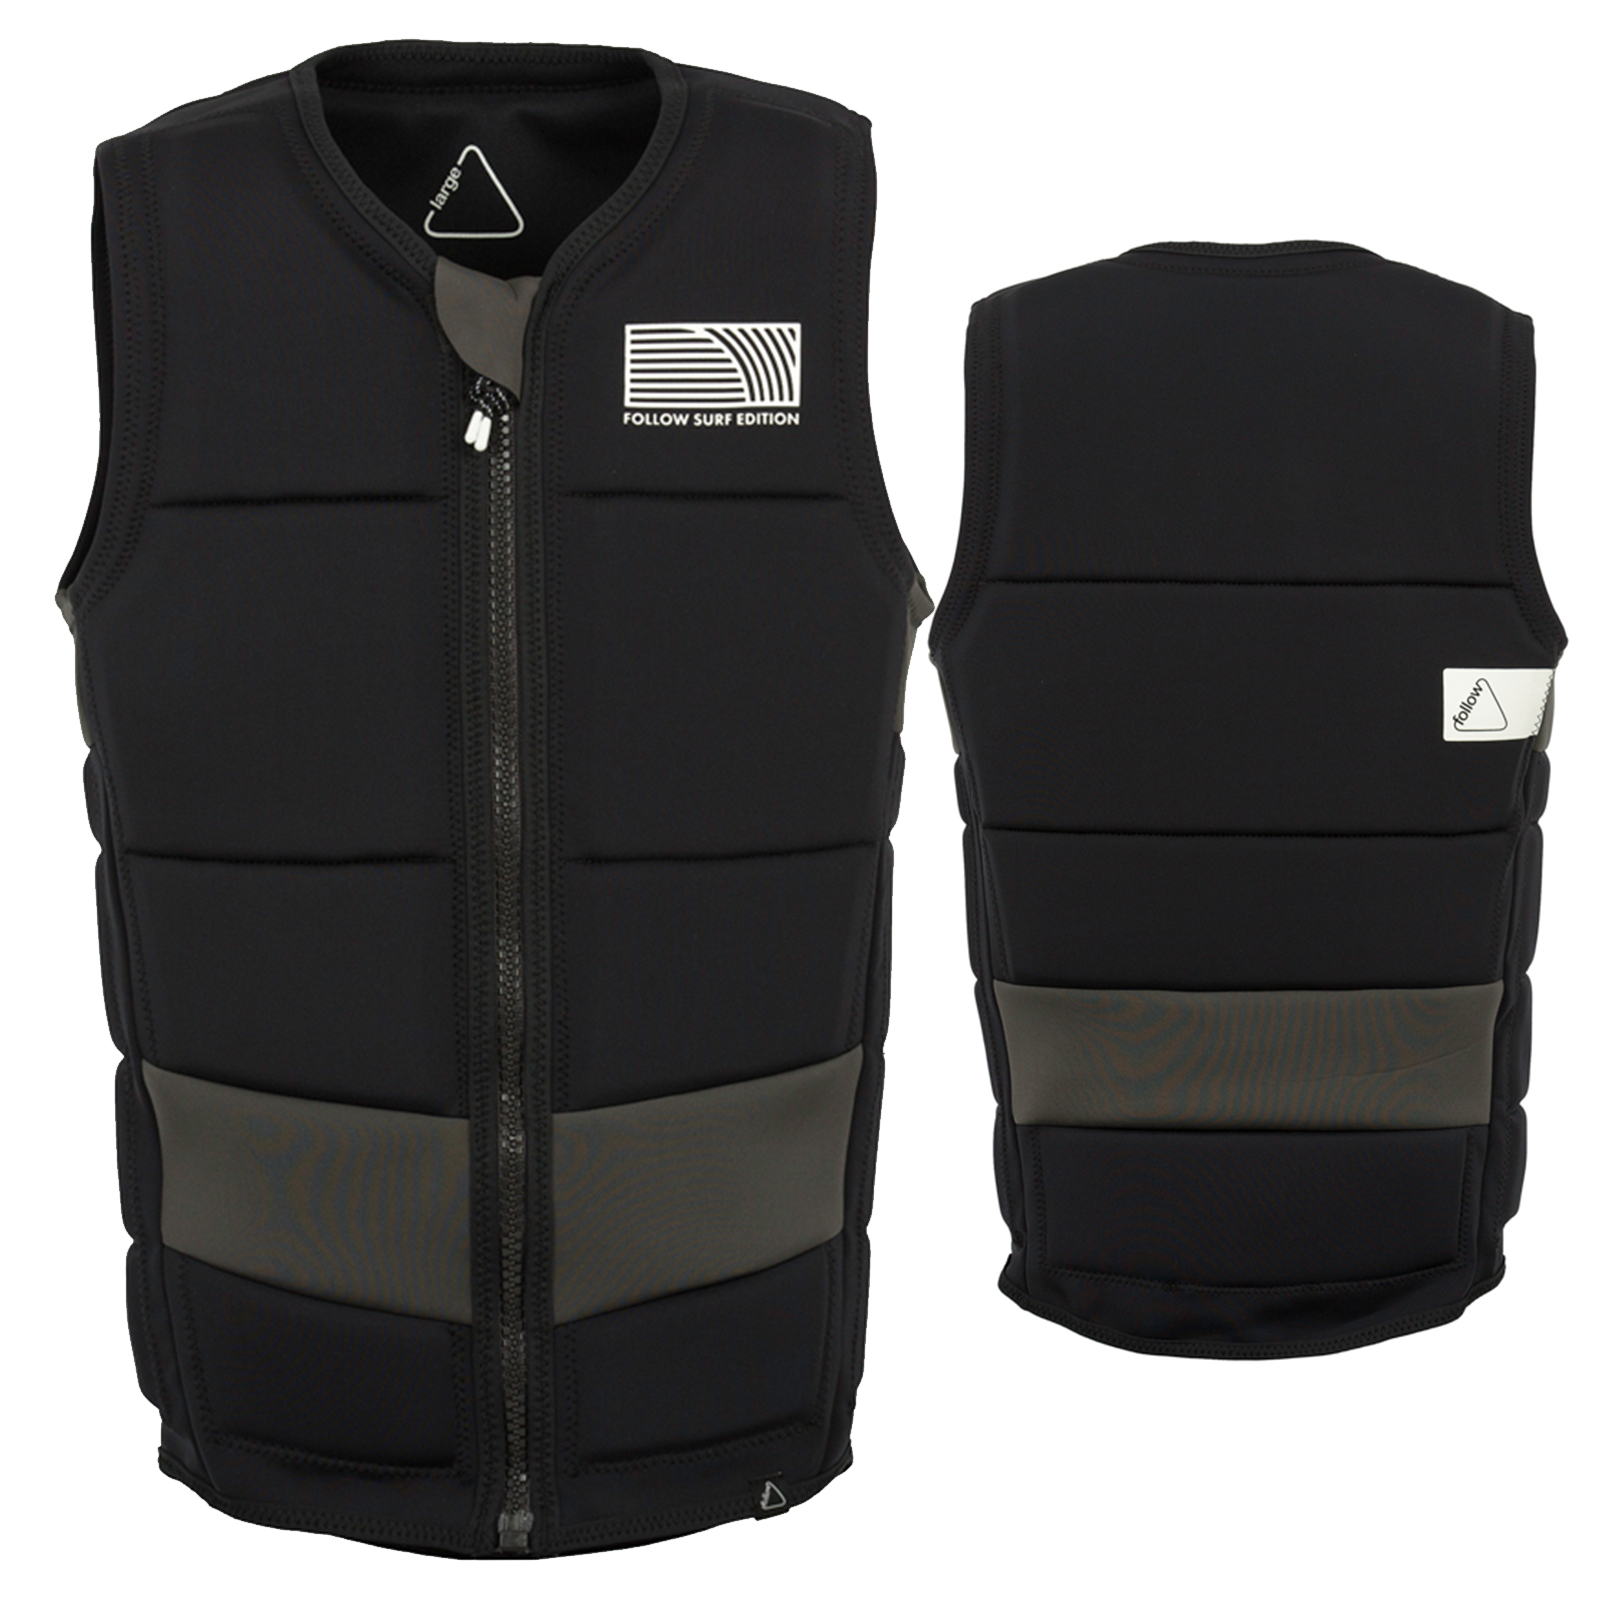 SURF EDITION PRO MEN'S IMPACT VEST BLACK FOLLOW 2018